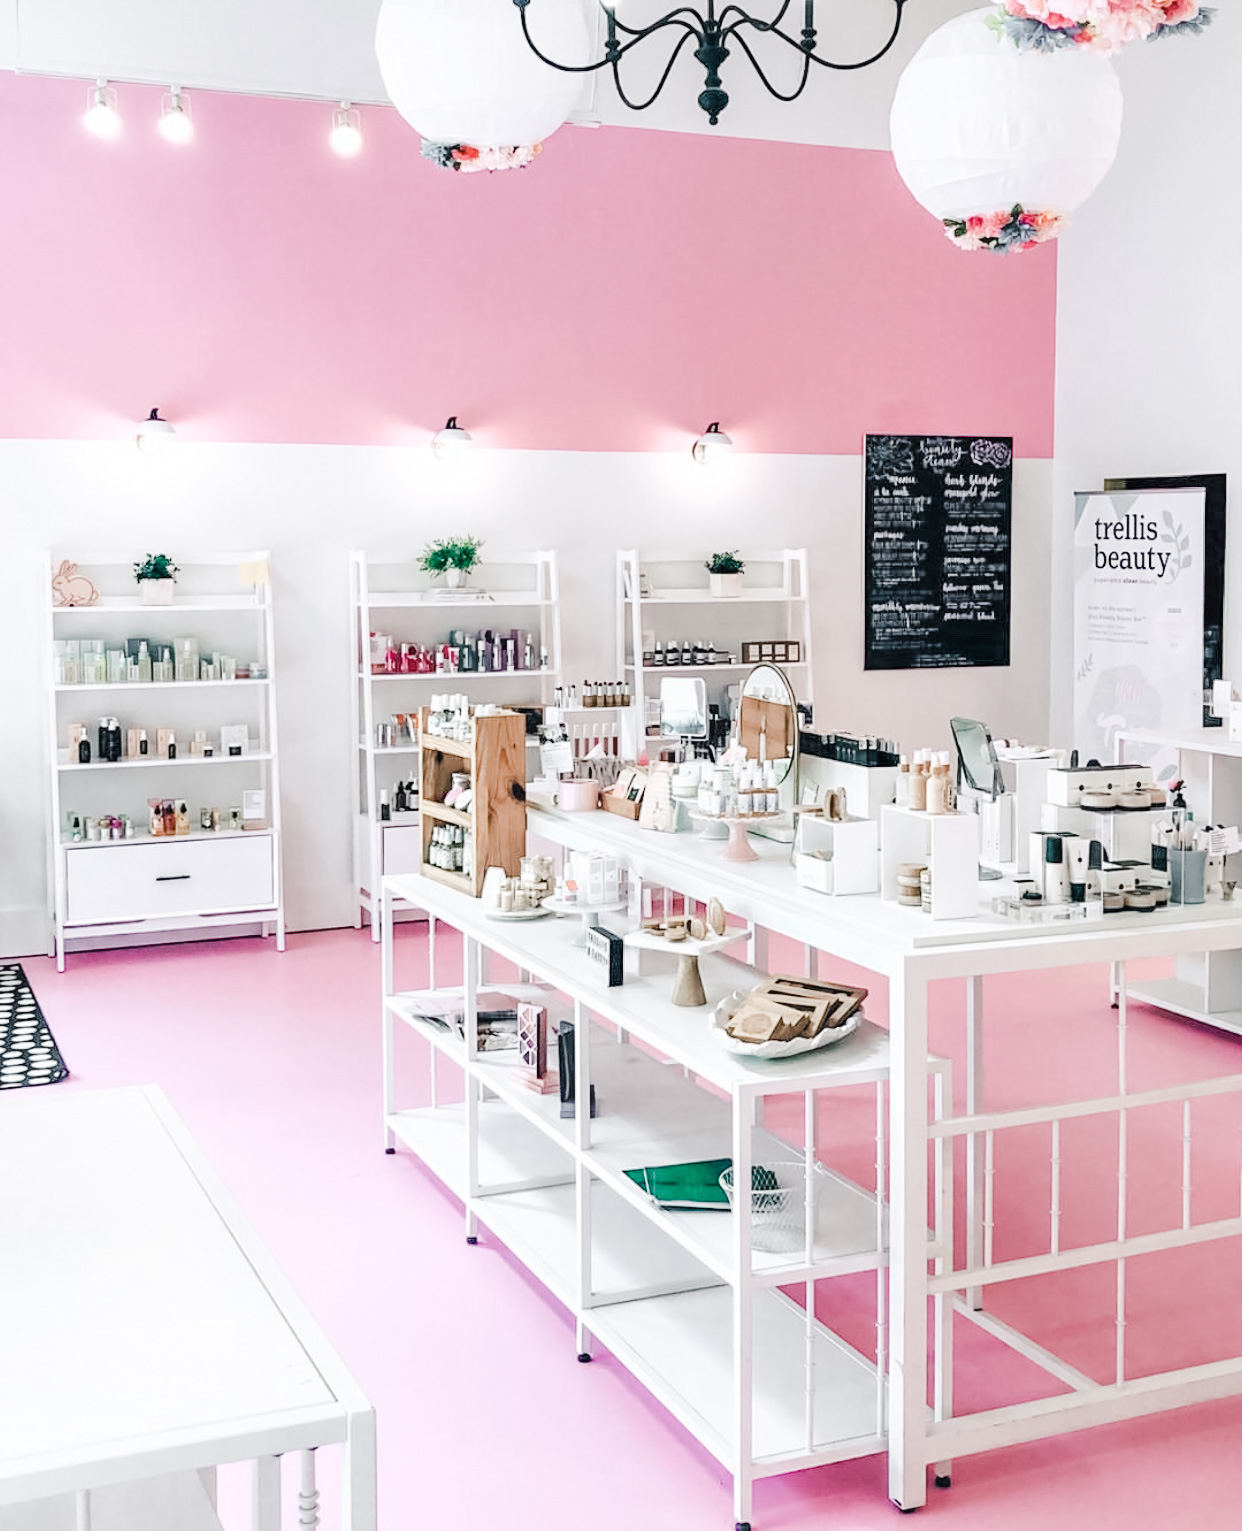 Interior of Trellis Beauty in Raleigh, NC. Pink floors, white fixtures, lots of light and pretty makeup objects on the shelves.